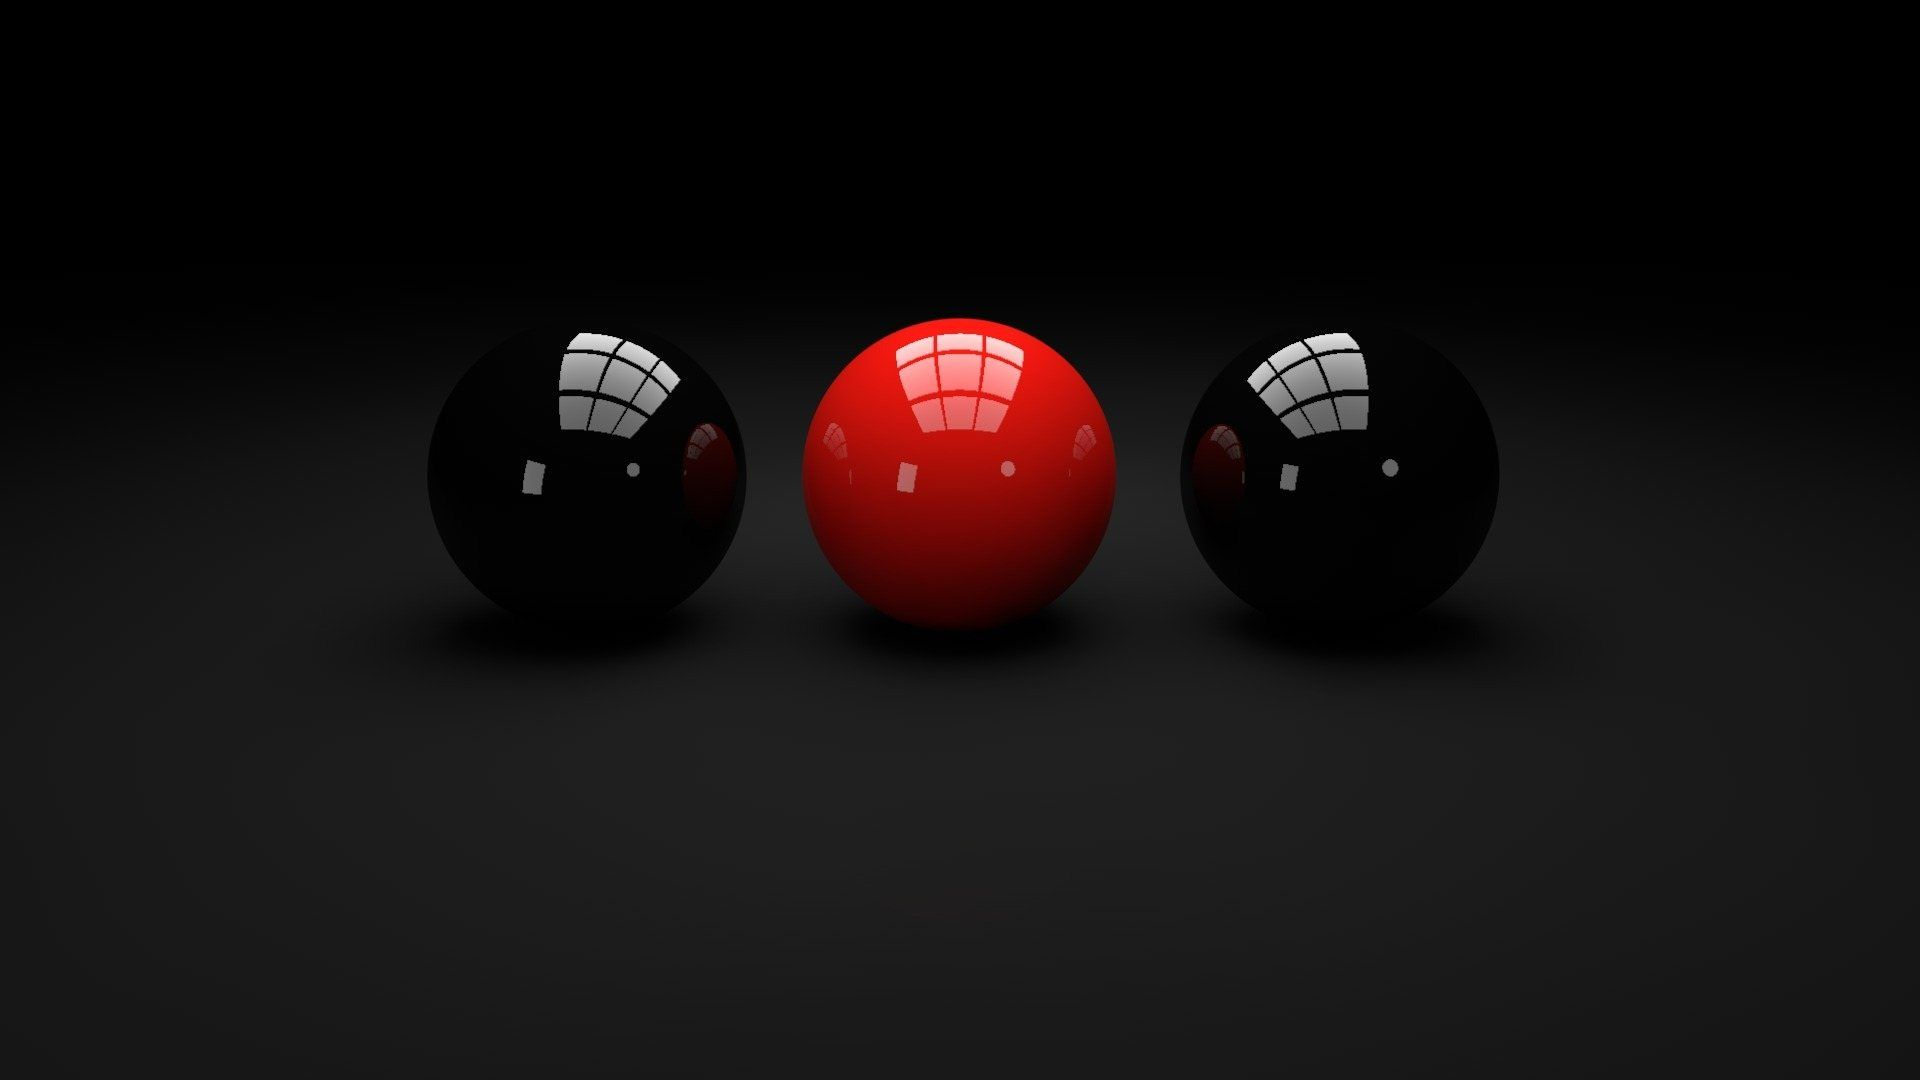 black and red balls.jpg